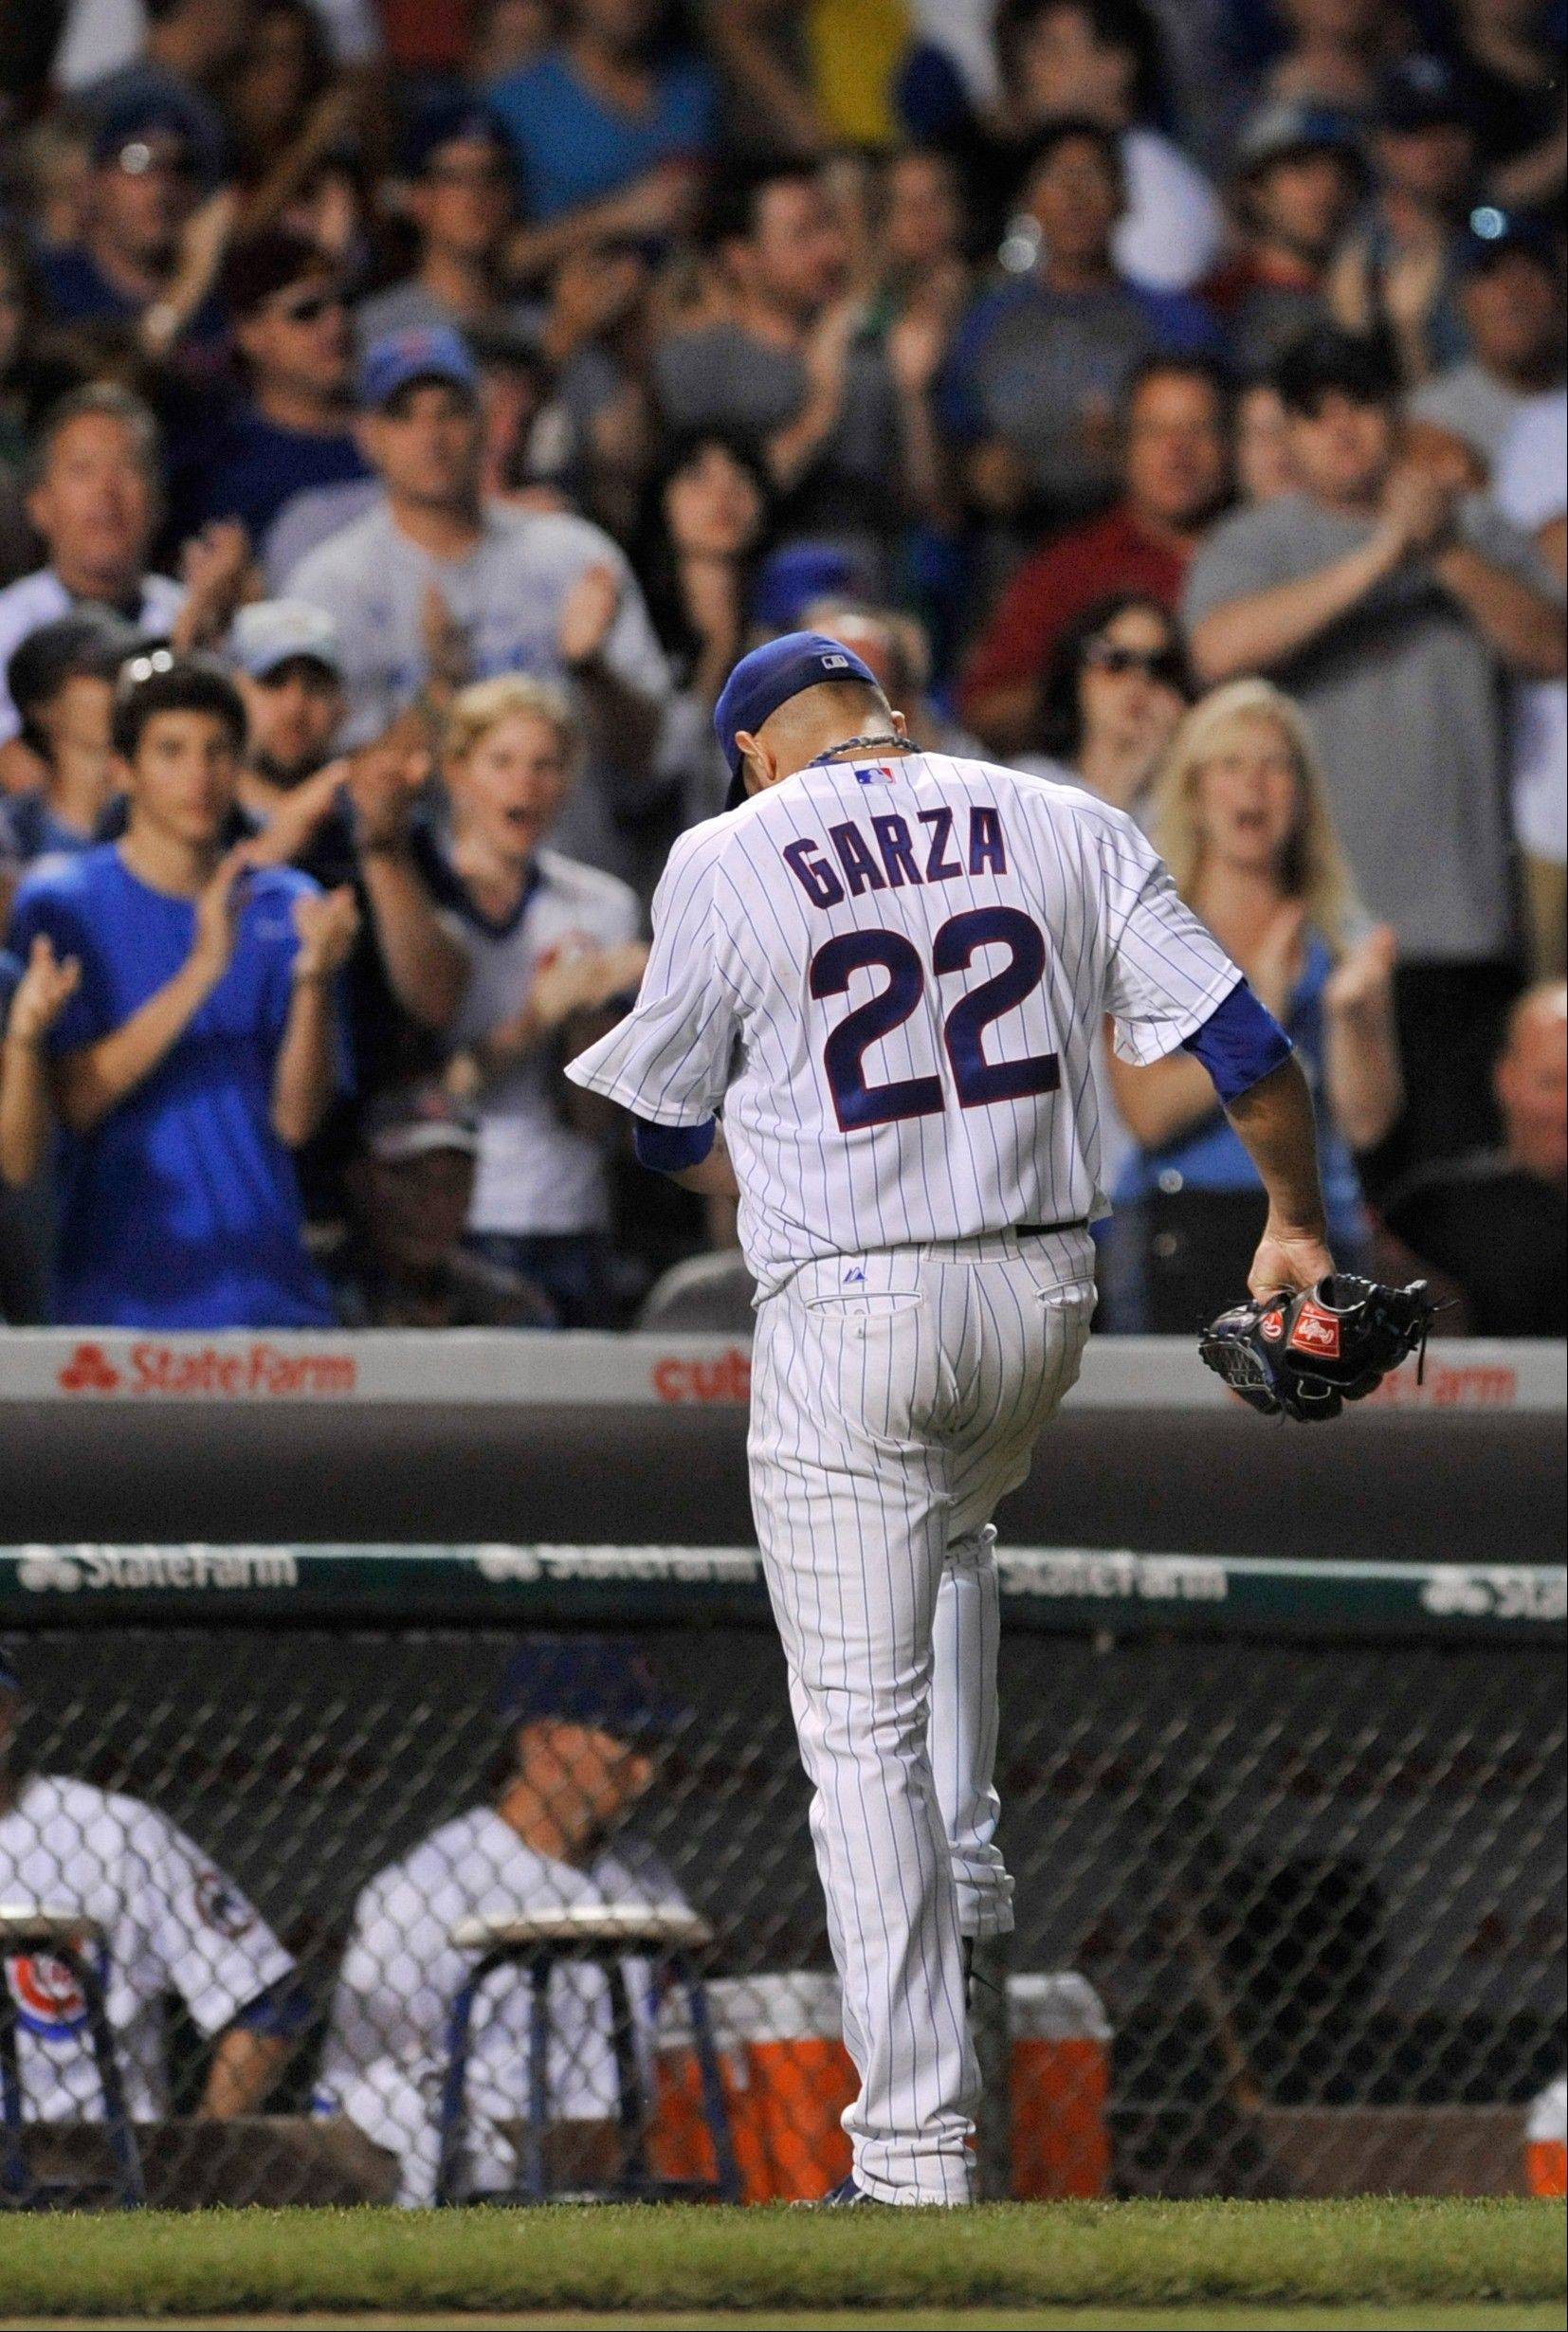 Cubs starter Matt Garza exits the game to cheers with two outs in the seventh inning Saturday at Wrigley Field. While recording his career-best fifth straight win, Garza (6-1) gave up 10 hits and 2 runs. In his last 5 starts, he is 5-0 with a 1.47 earned run average.